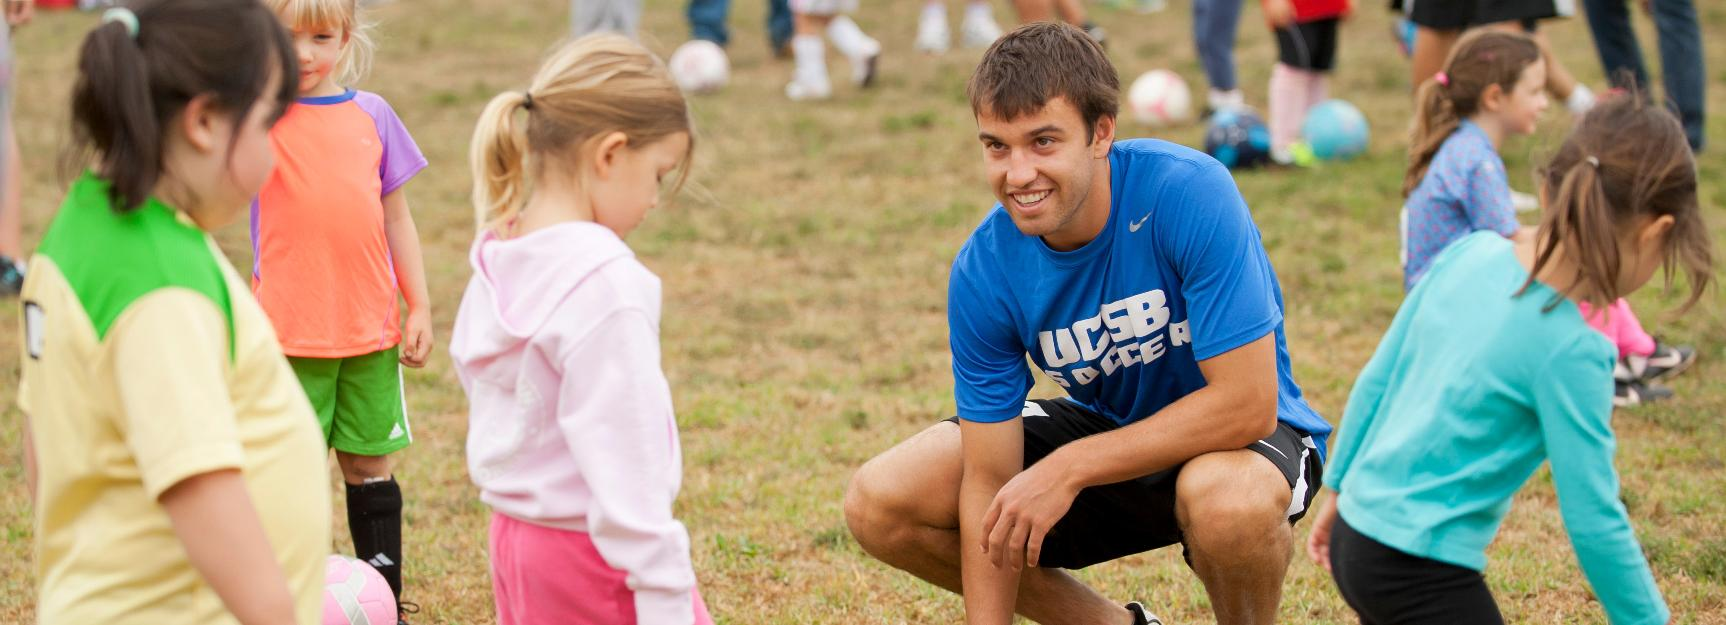 UCSB Soccer to Host AYSO Skills Day on Aug. 25